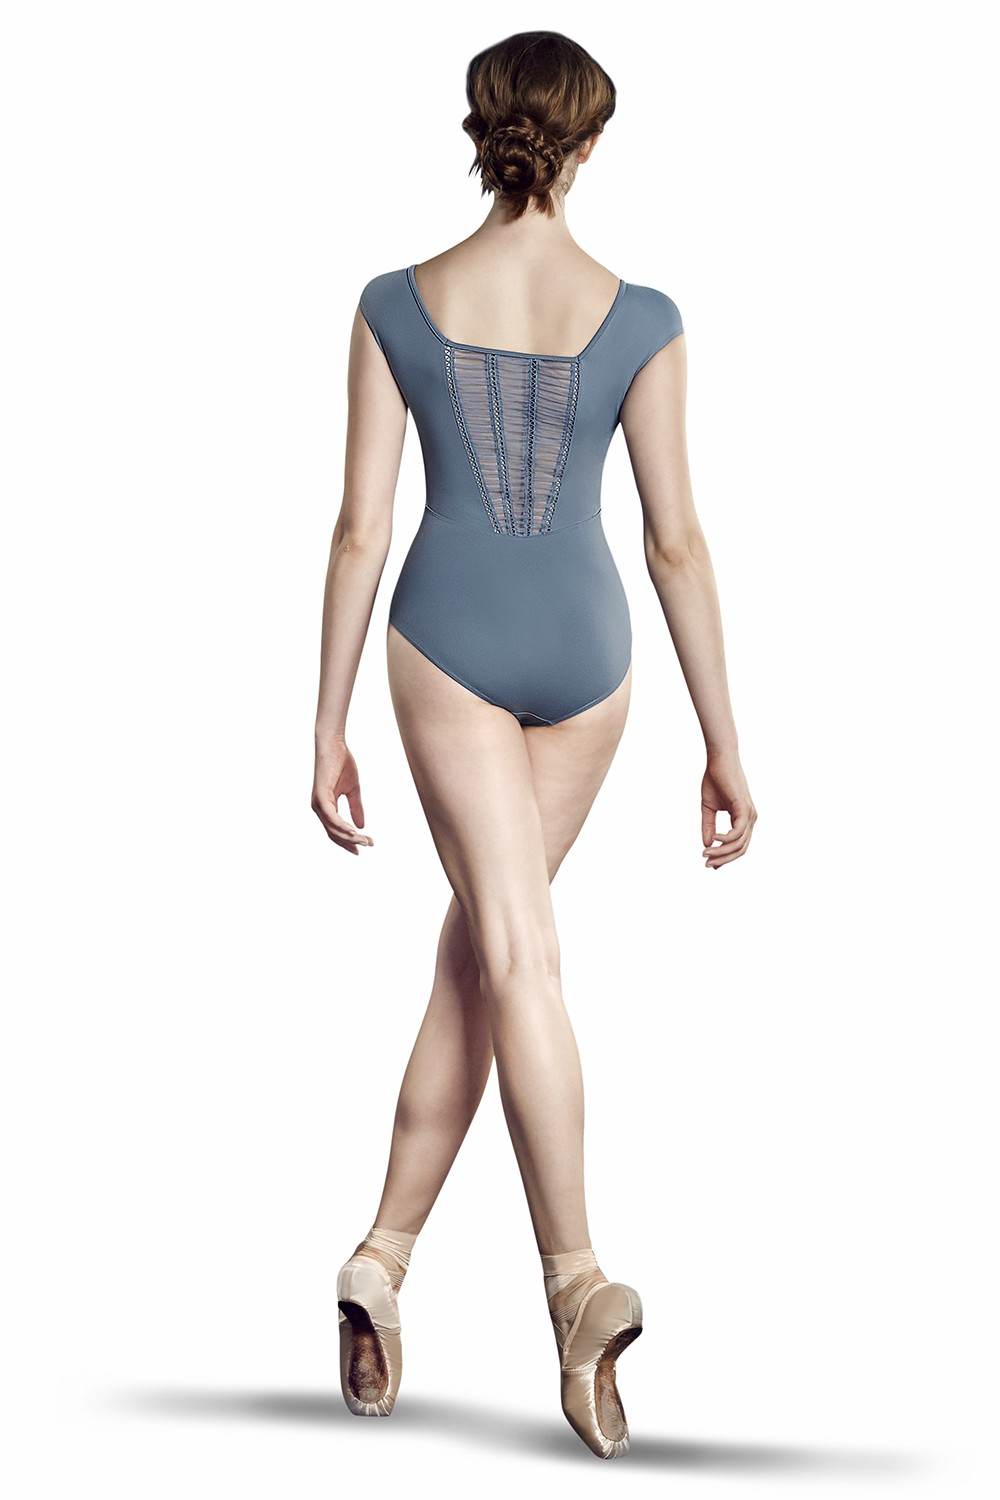 Justaucorps A Mancherons Elastique Z Womens Short Sleeve Leotards